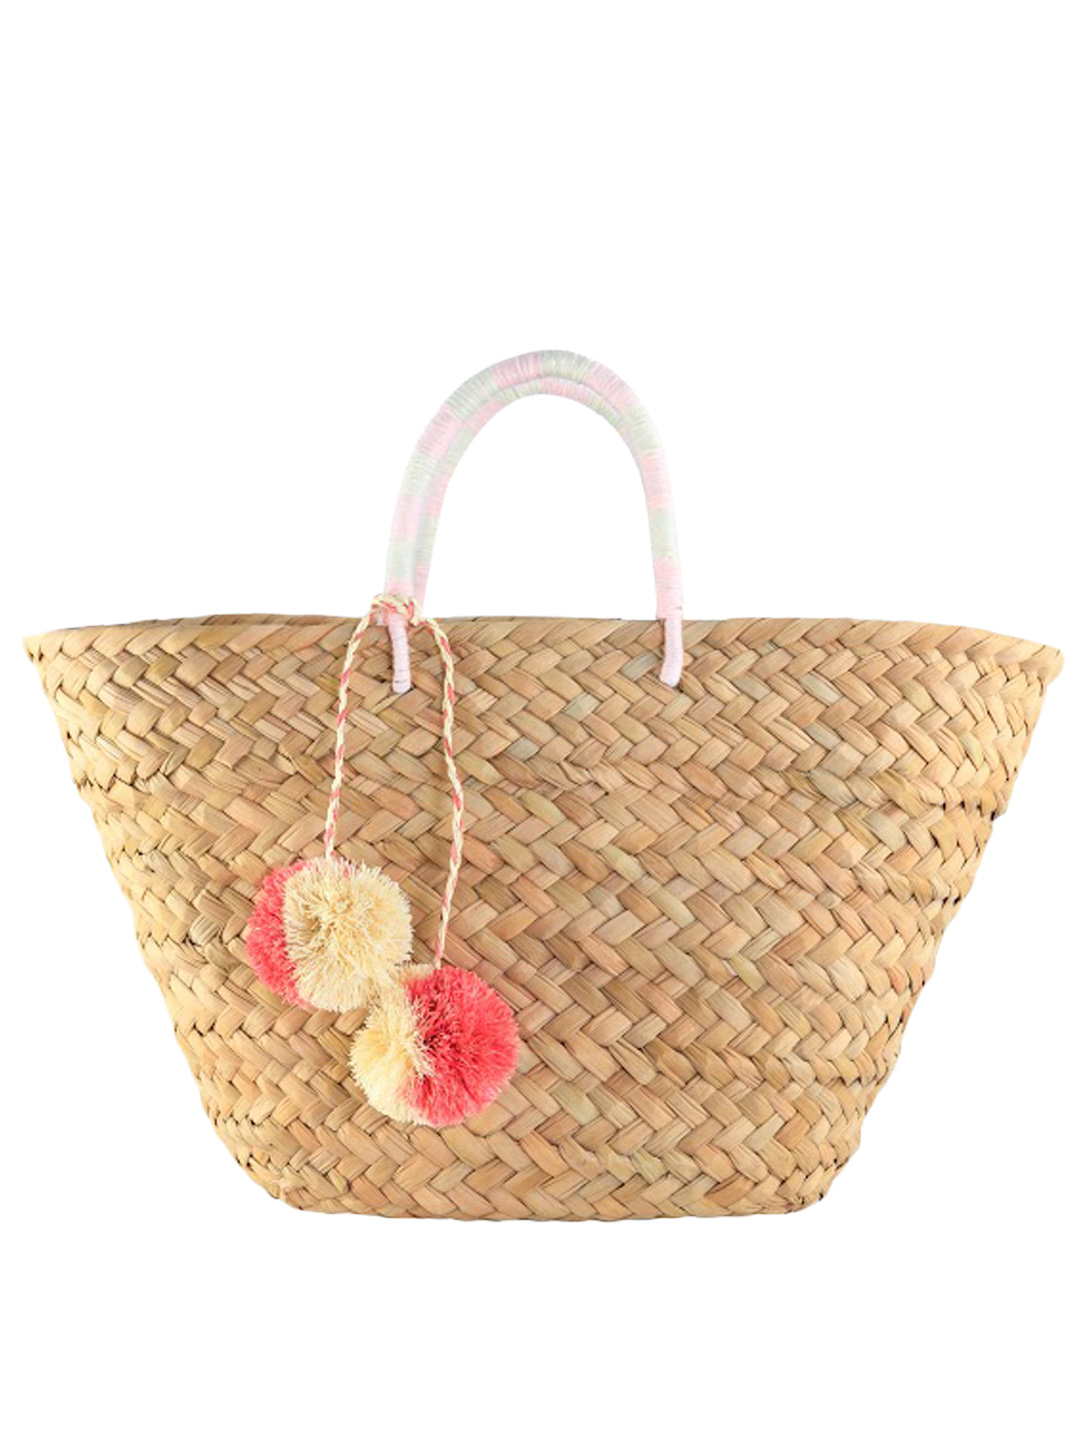 KAYU St Tropez Woven Tote Bag With Pom-Pom H Project Pink